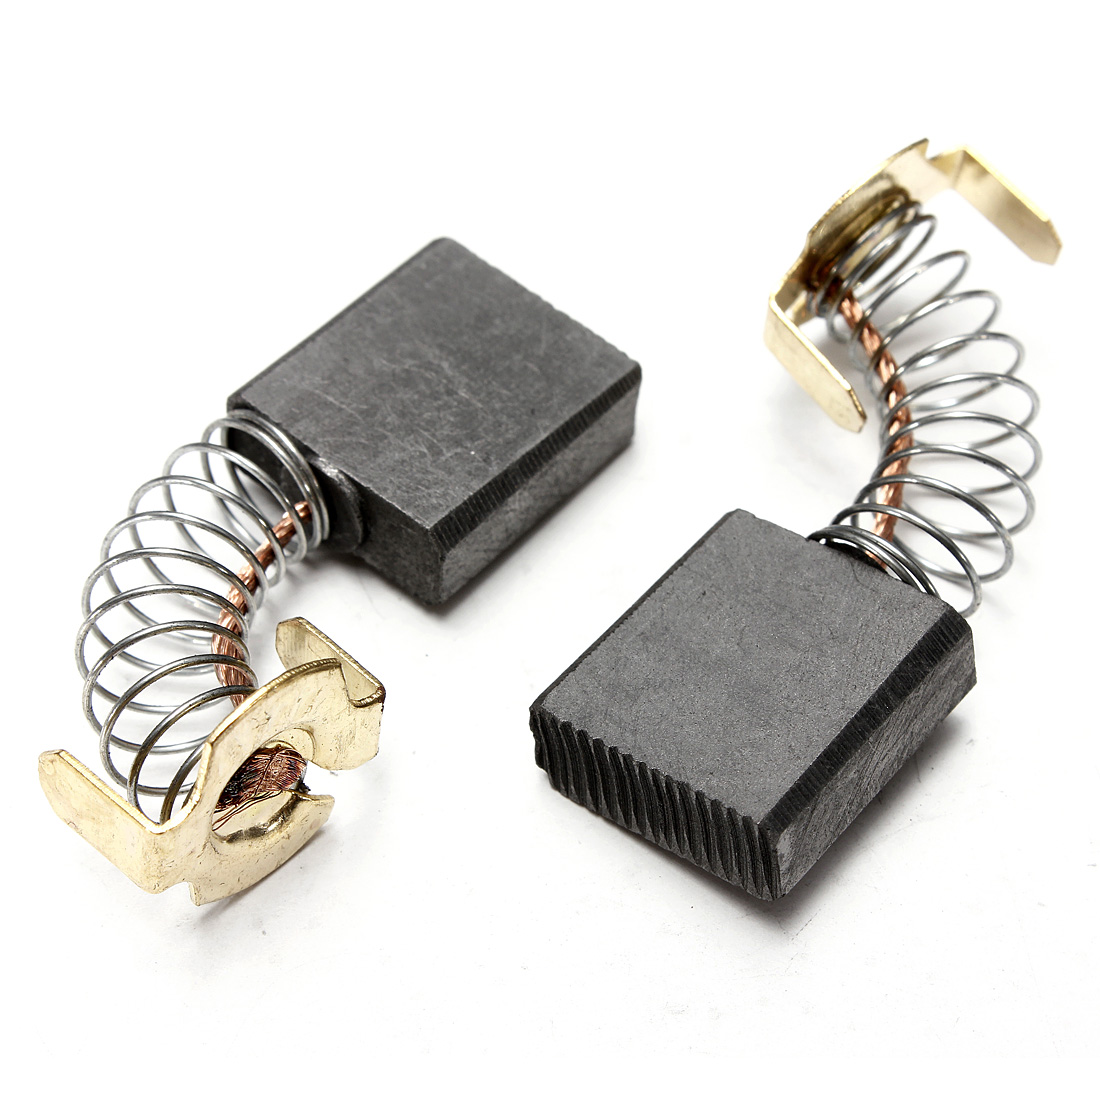 2pcs 17mm X 17mm X 7mm Power Tool Carbon Brushes For